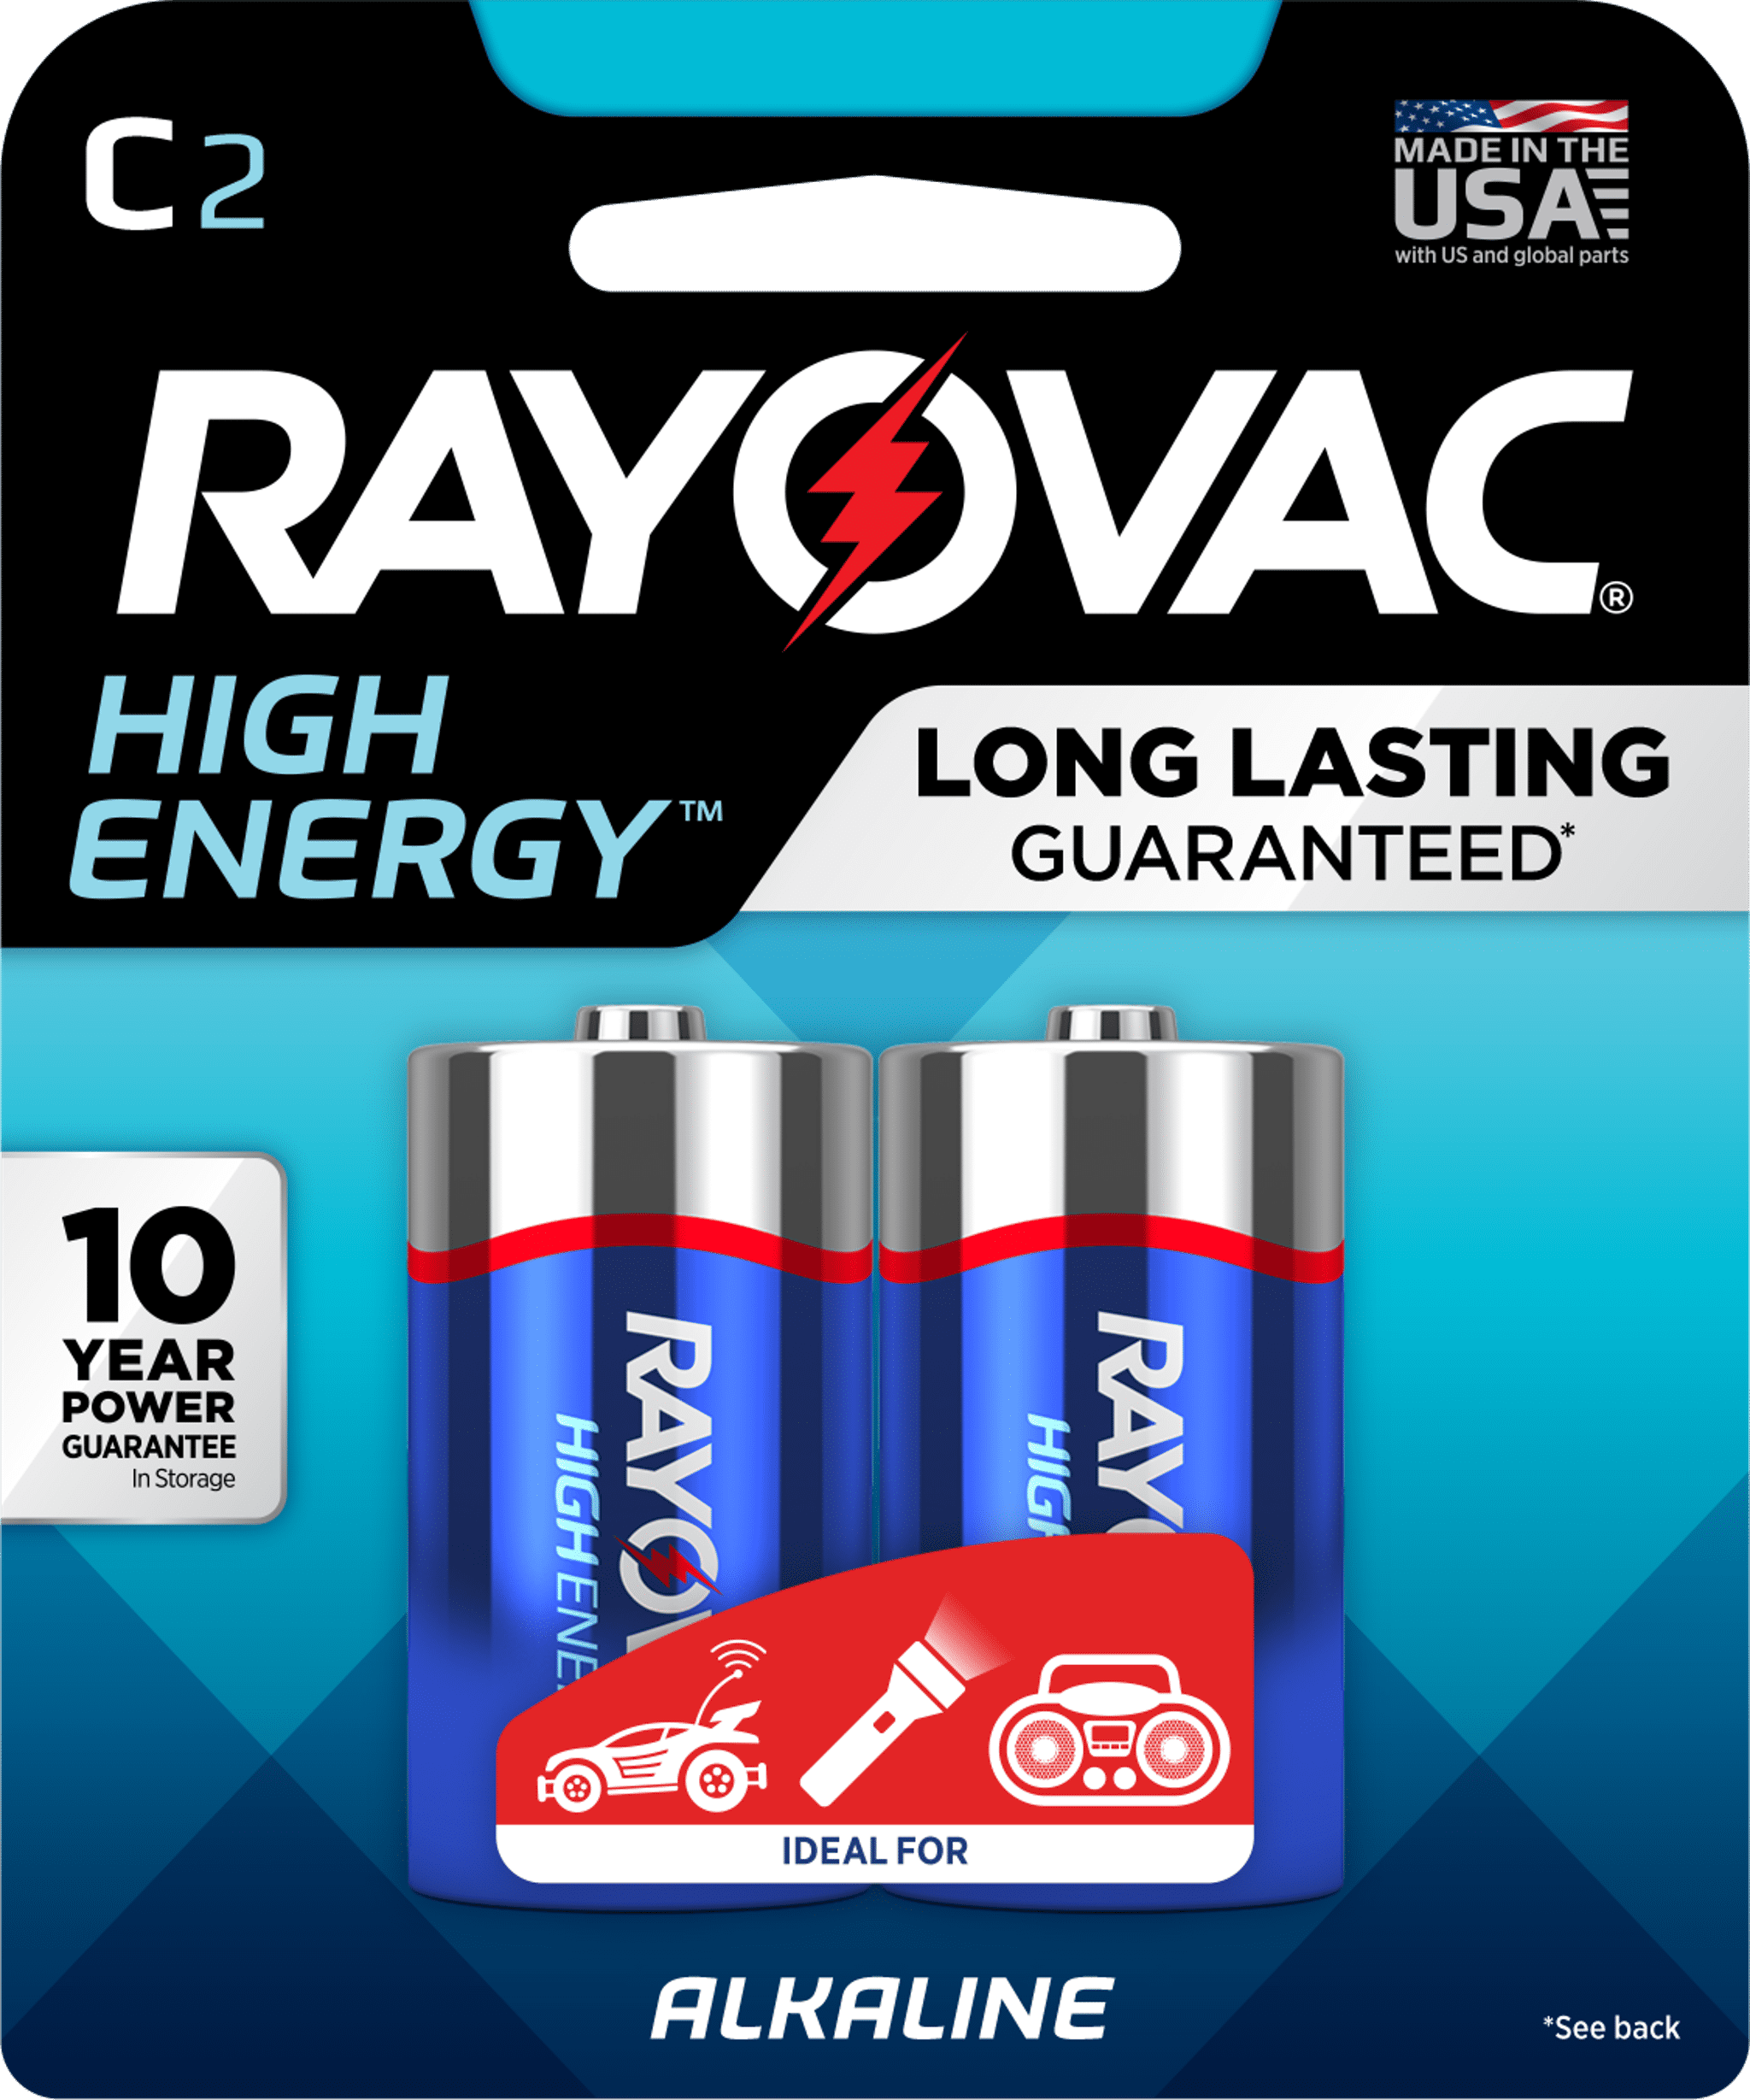 Rayovac High Energy Alkaline Batteries, Size C Batteries, 2-Pack ...